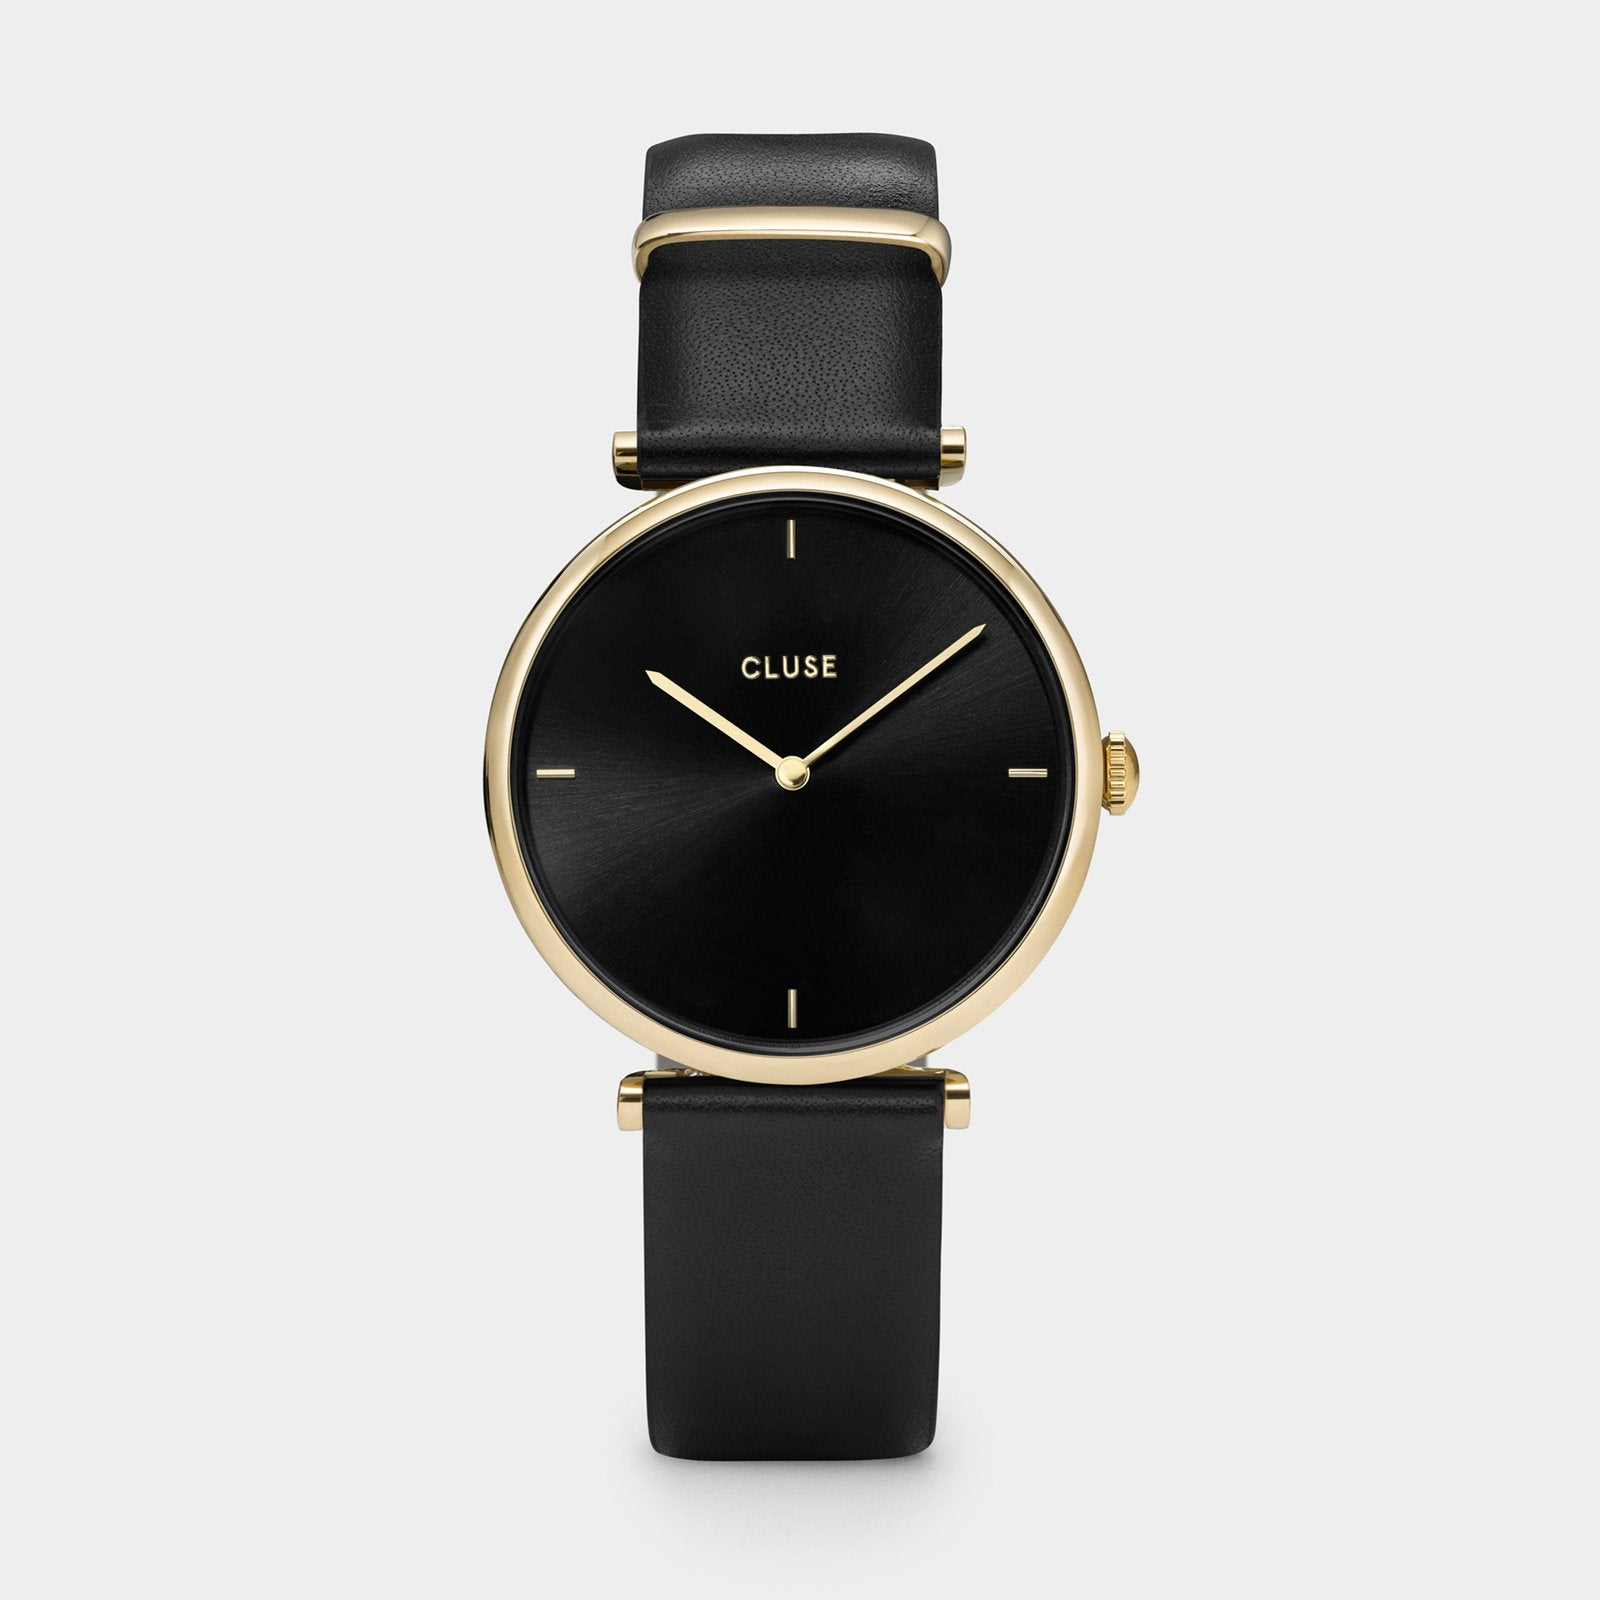 CLUSE Triomphe Gold Black/Black CL61006 - watch